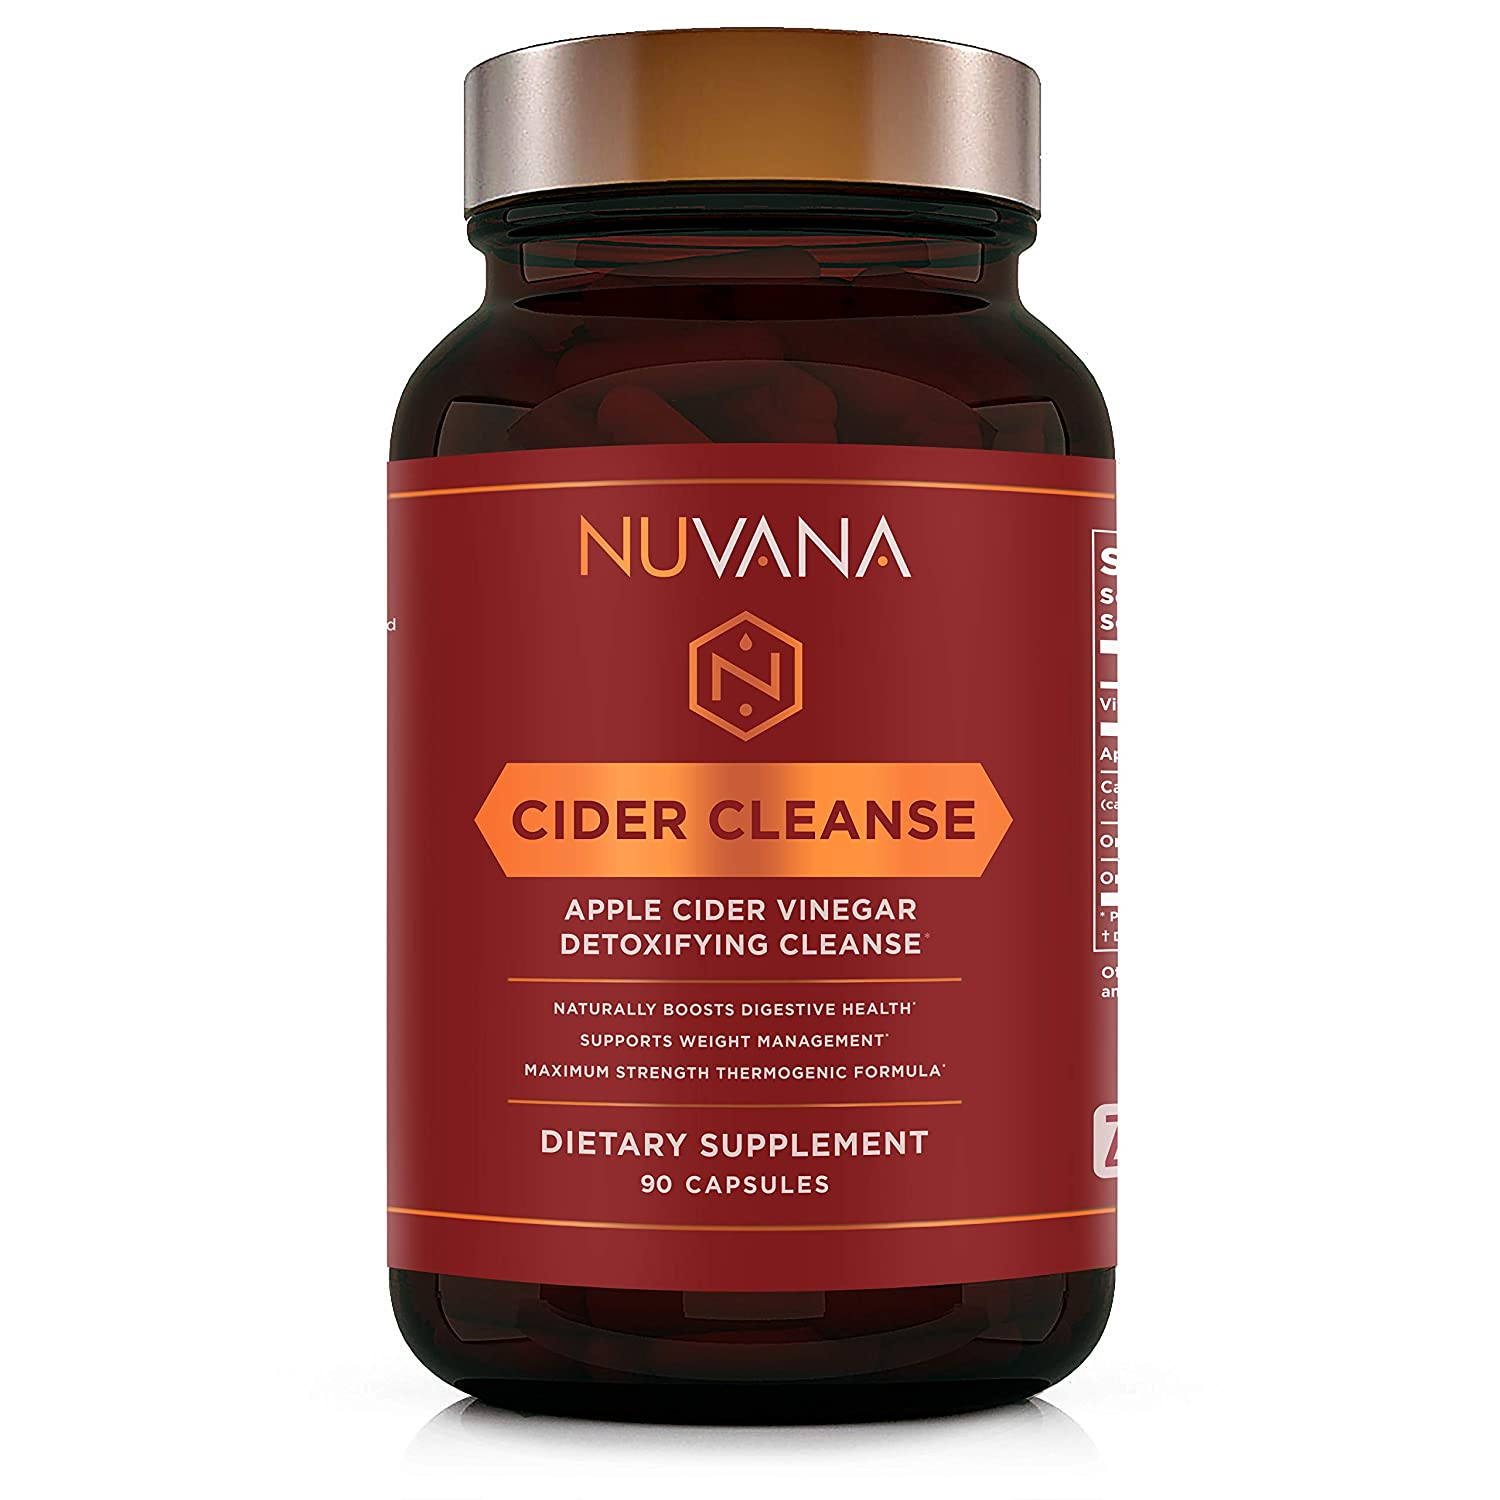 Cider Cleanse | Apple Cider Vinegar with Organic Ginger, Cinnamon, Cayenne Pepper and Vitamin C | Max Strength Thermogenic for Improved Digestion and Detox | 90 Vegan Capsules